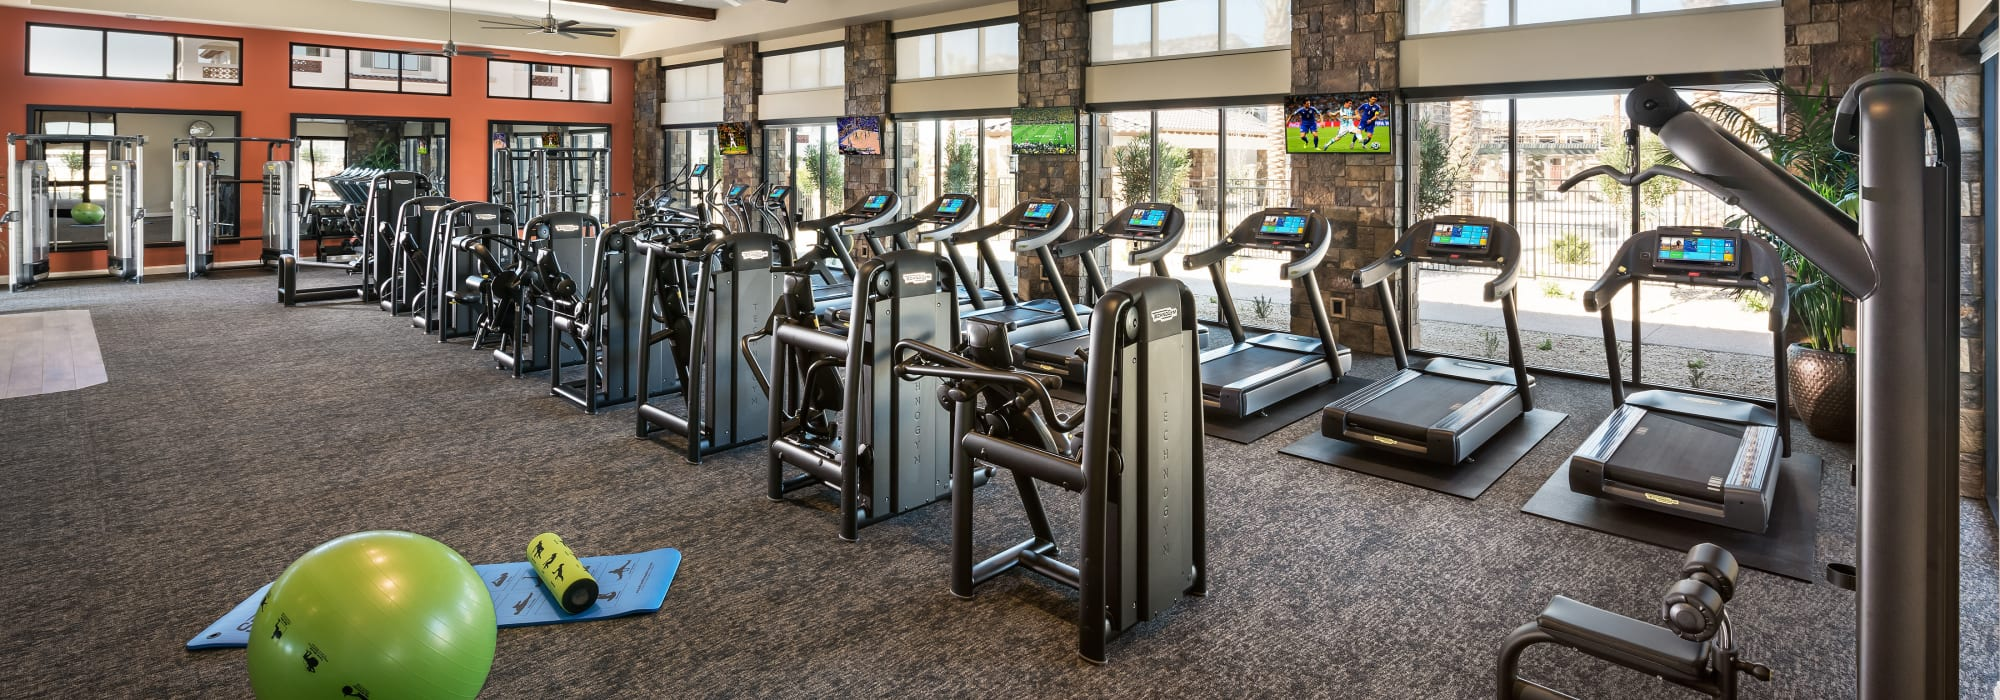 Very well-equipped fitness center at San Villante in Mesa, Arizona